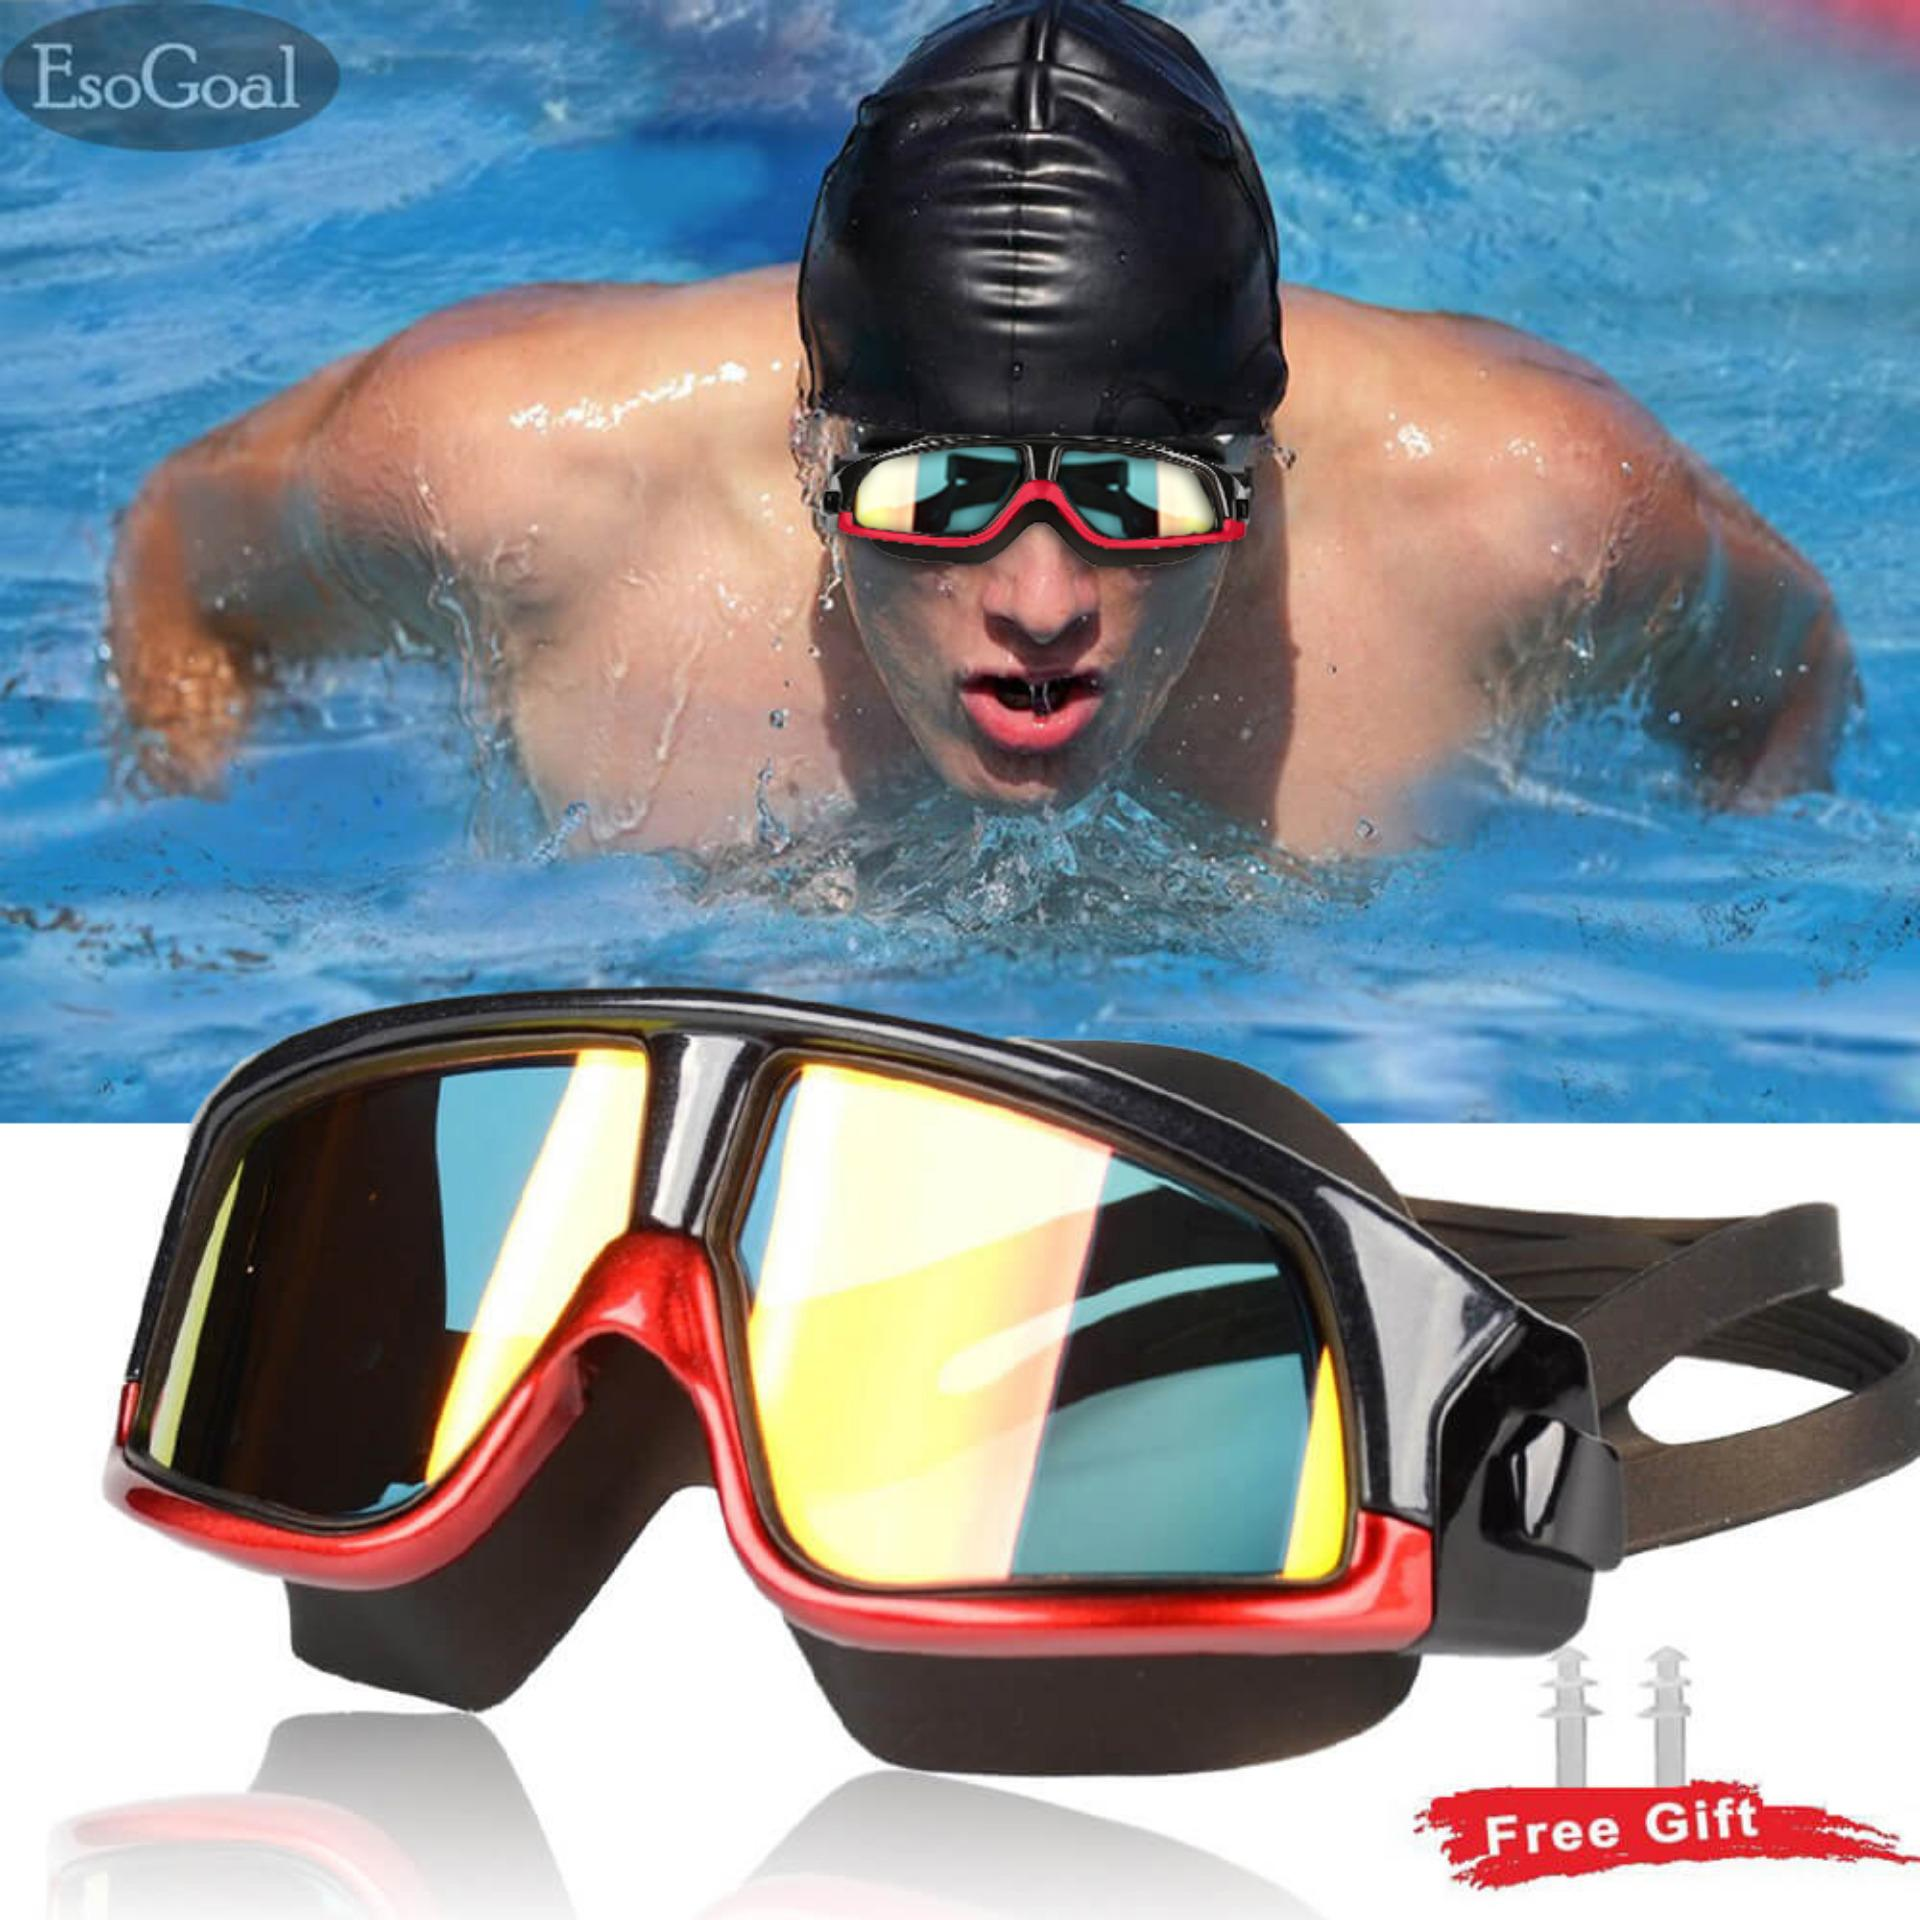 Swimming Goggles,Flat Light HD Anti-Fog Big Box Swimming Goggles,Adult Men and Women Waterproof Swimming Equipment 2 Pieces Boating & Watersports